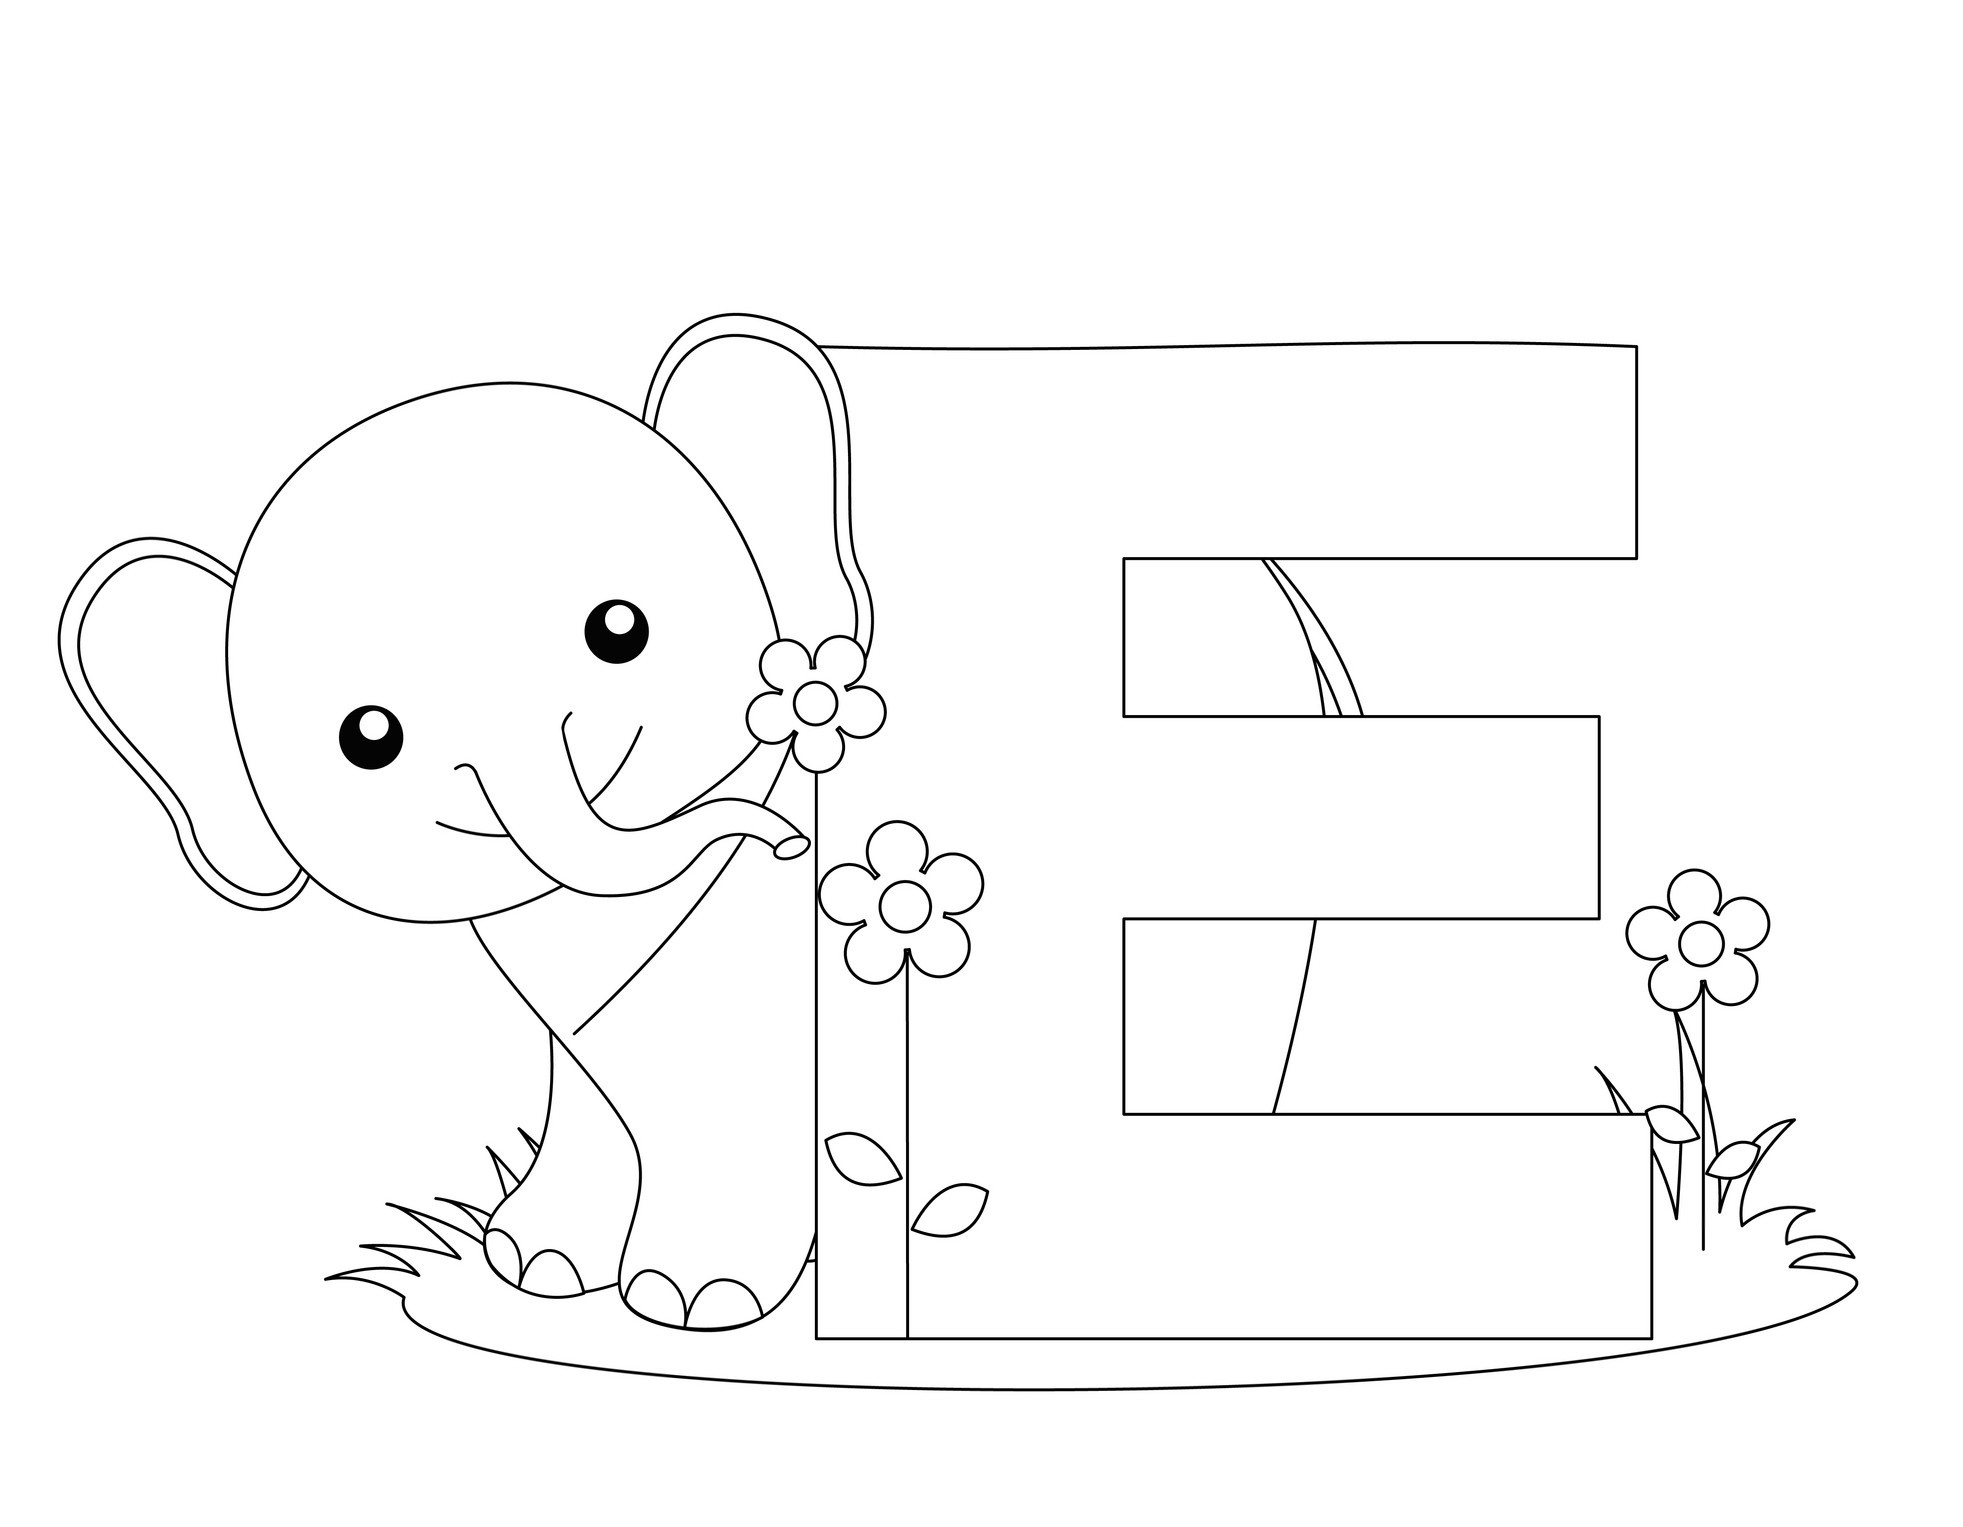 colouring pictures of alphabets free printable alphabet coloring pages for kids best alphabets pictures colouring of